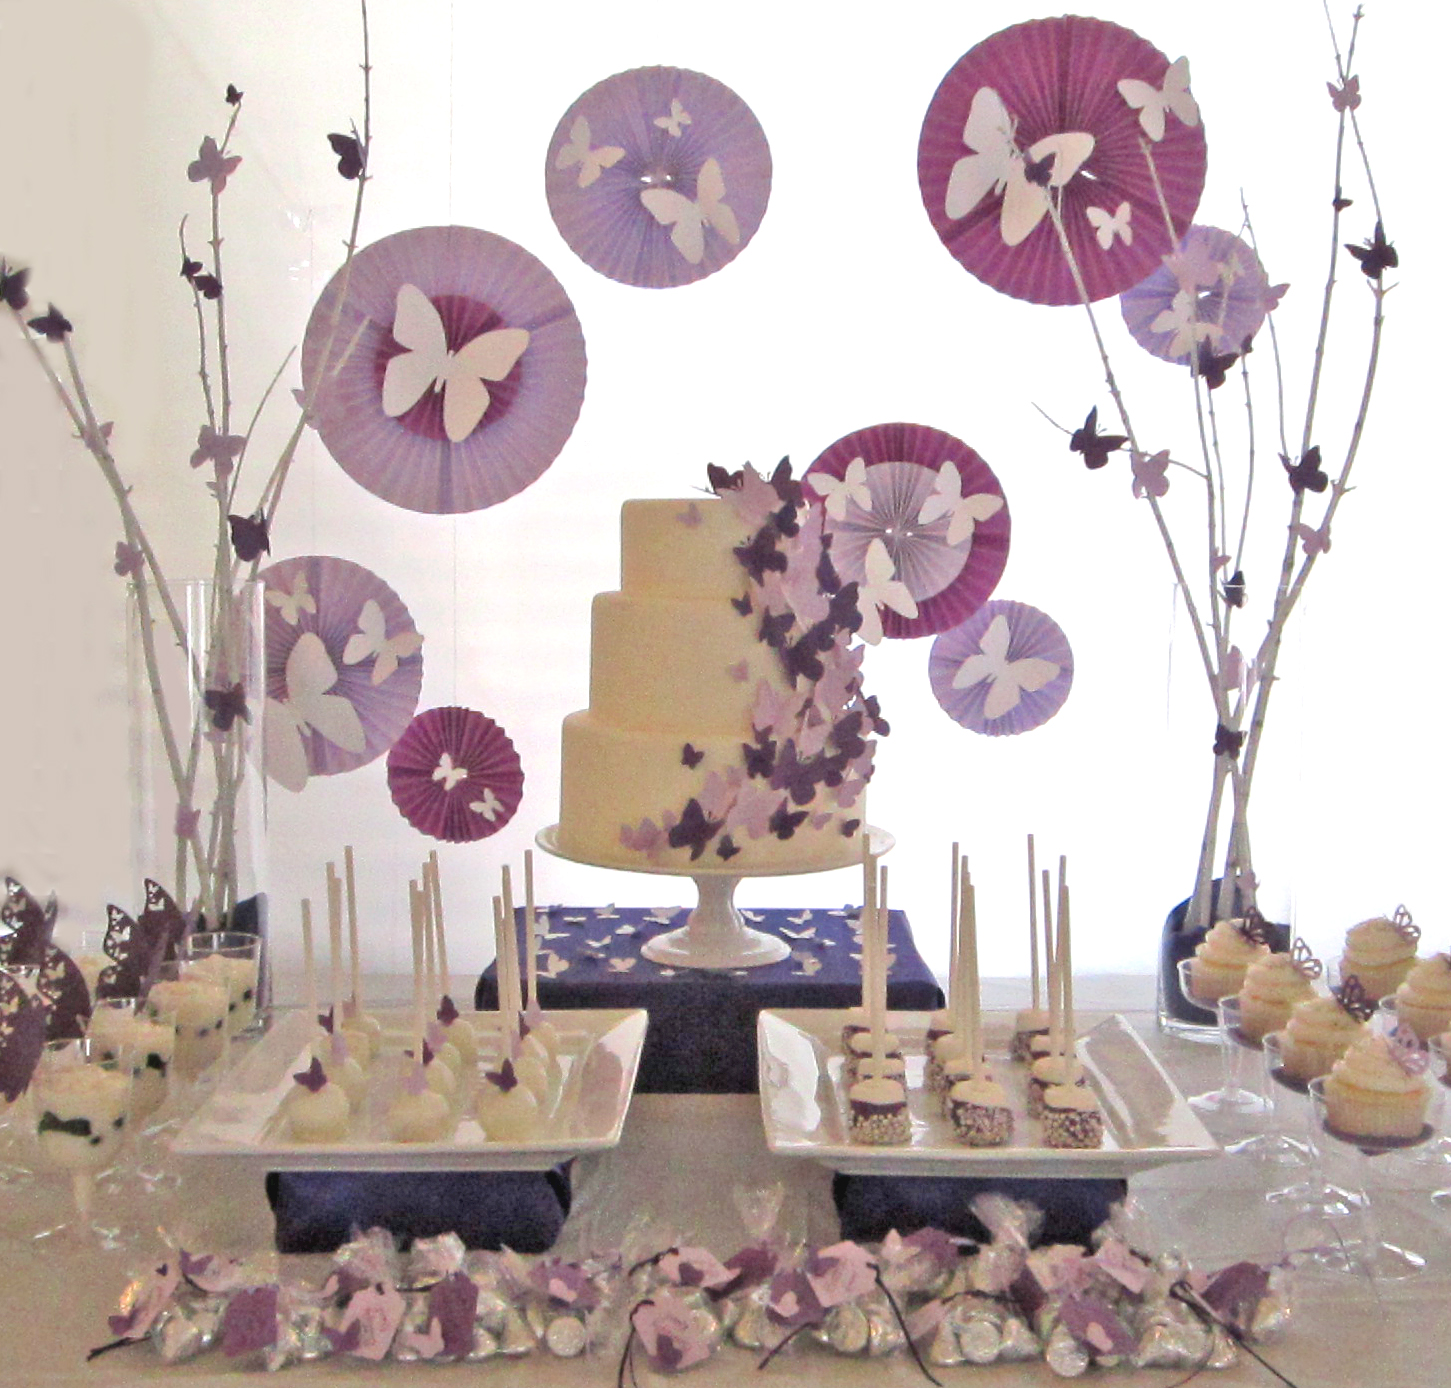 Sweeten Your Day Events: Butterfly Dessert Table